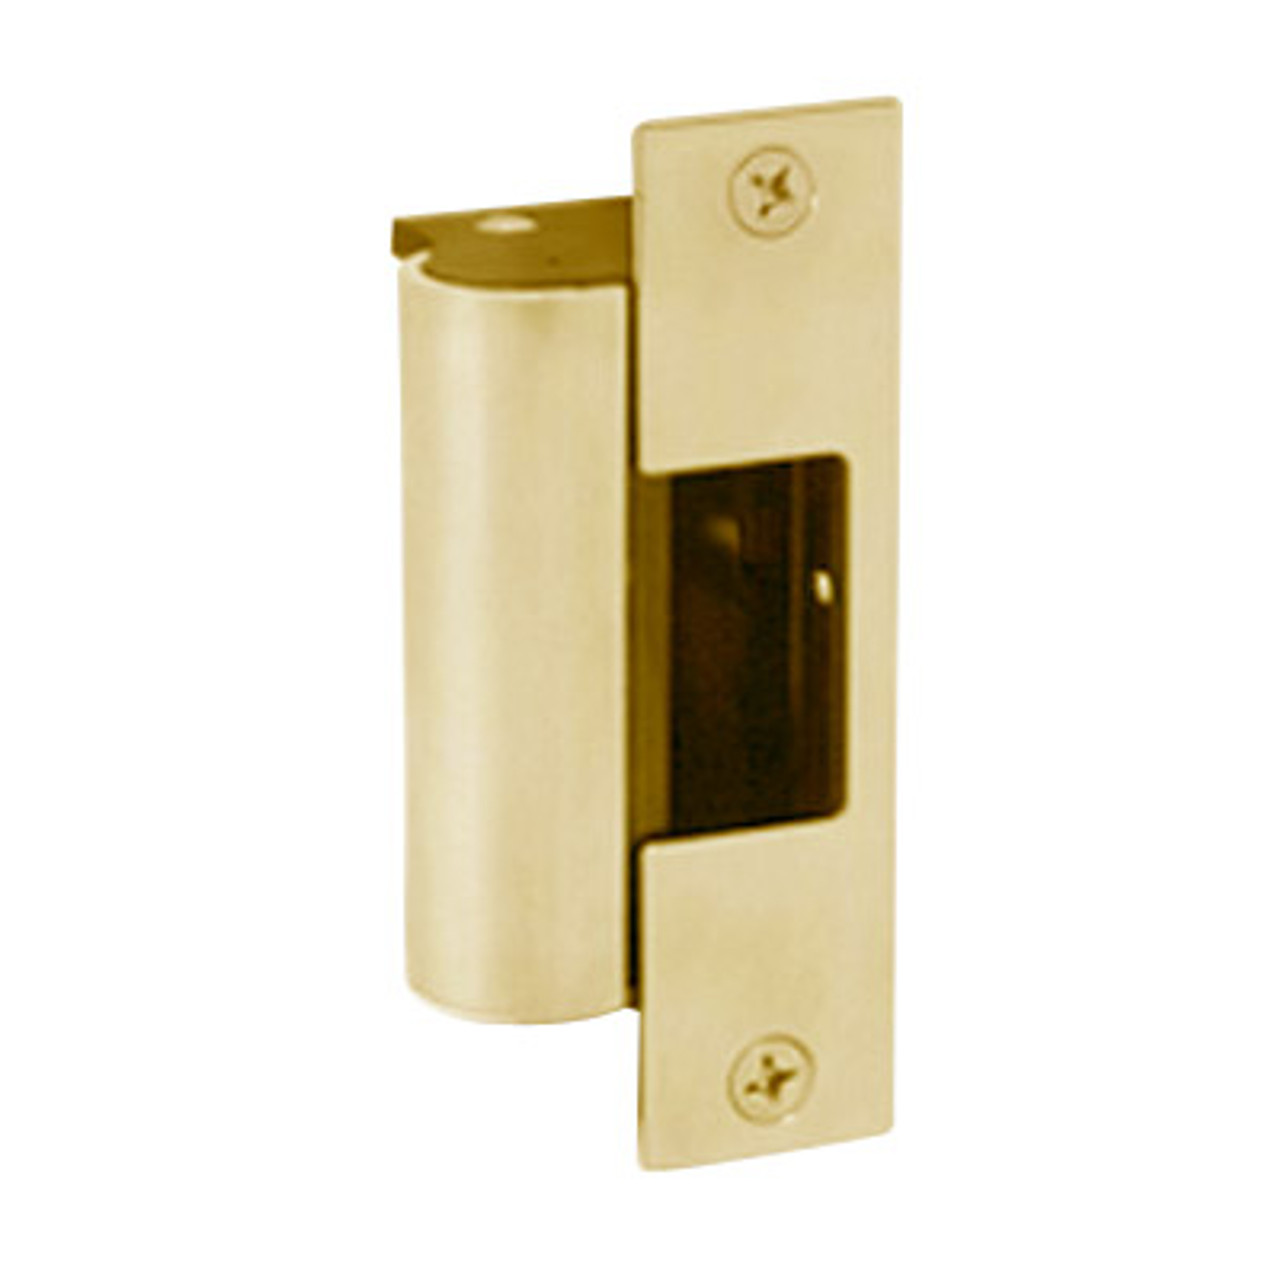 1006-612-LBM Hes Electric Strike Body with Latchbolt Monitor in Satin Bronze Finish